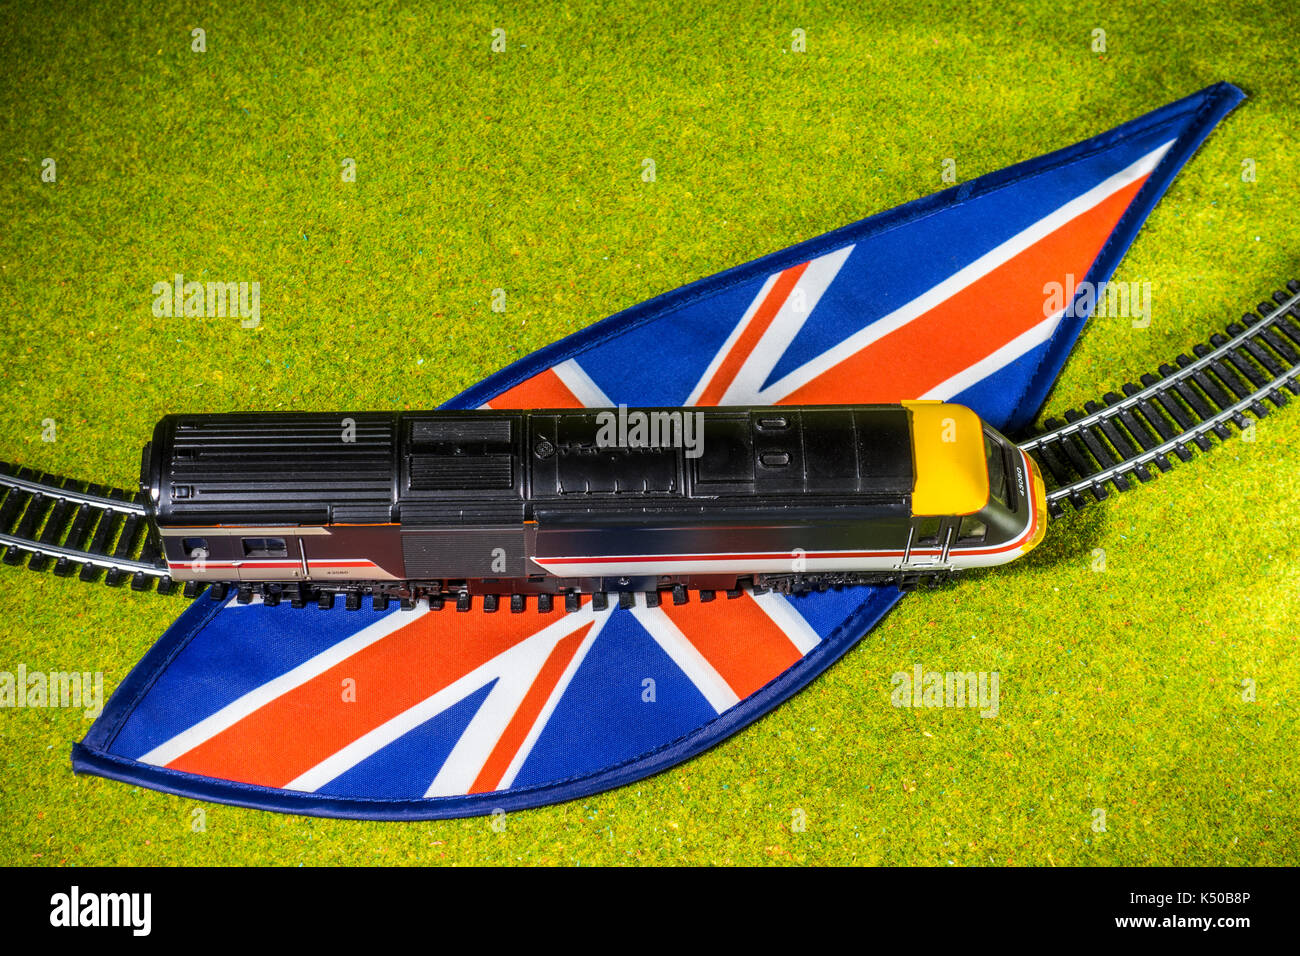 A model train and track on Union Jack colours, surrounded by grass, depicting the general concept of UK train travel. - Stock Image